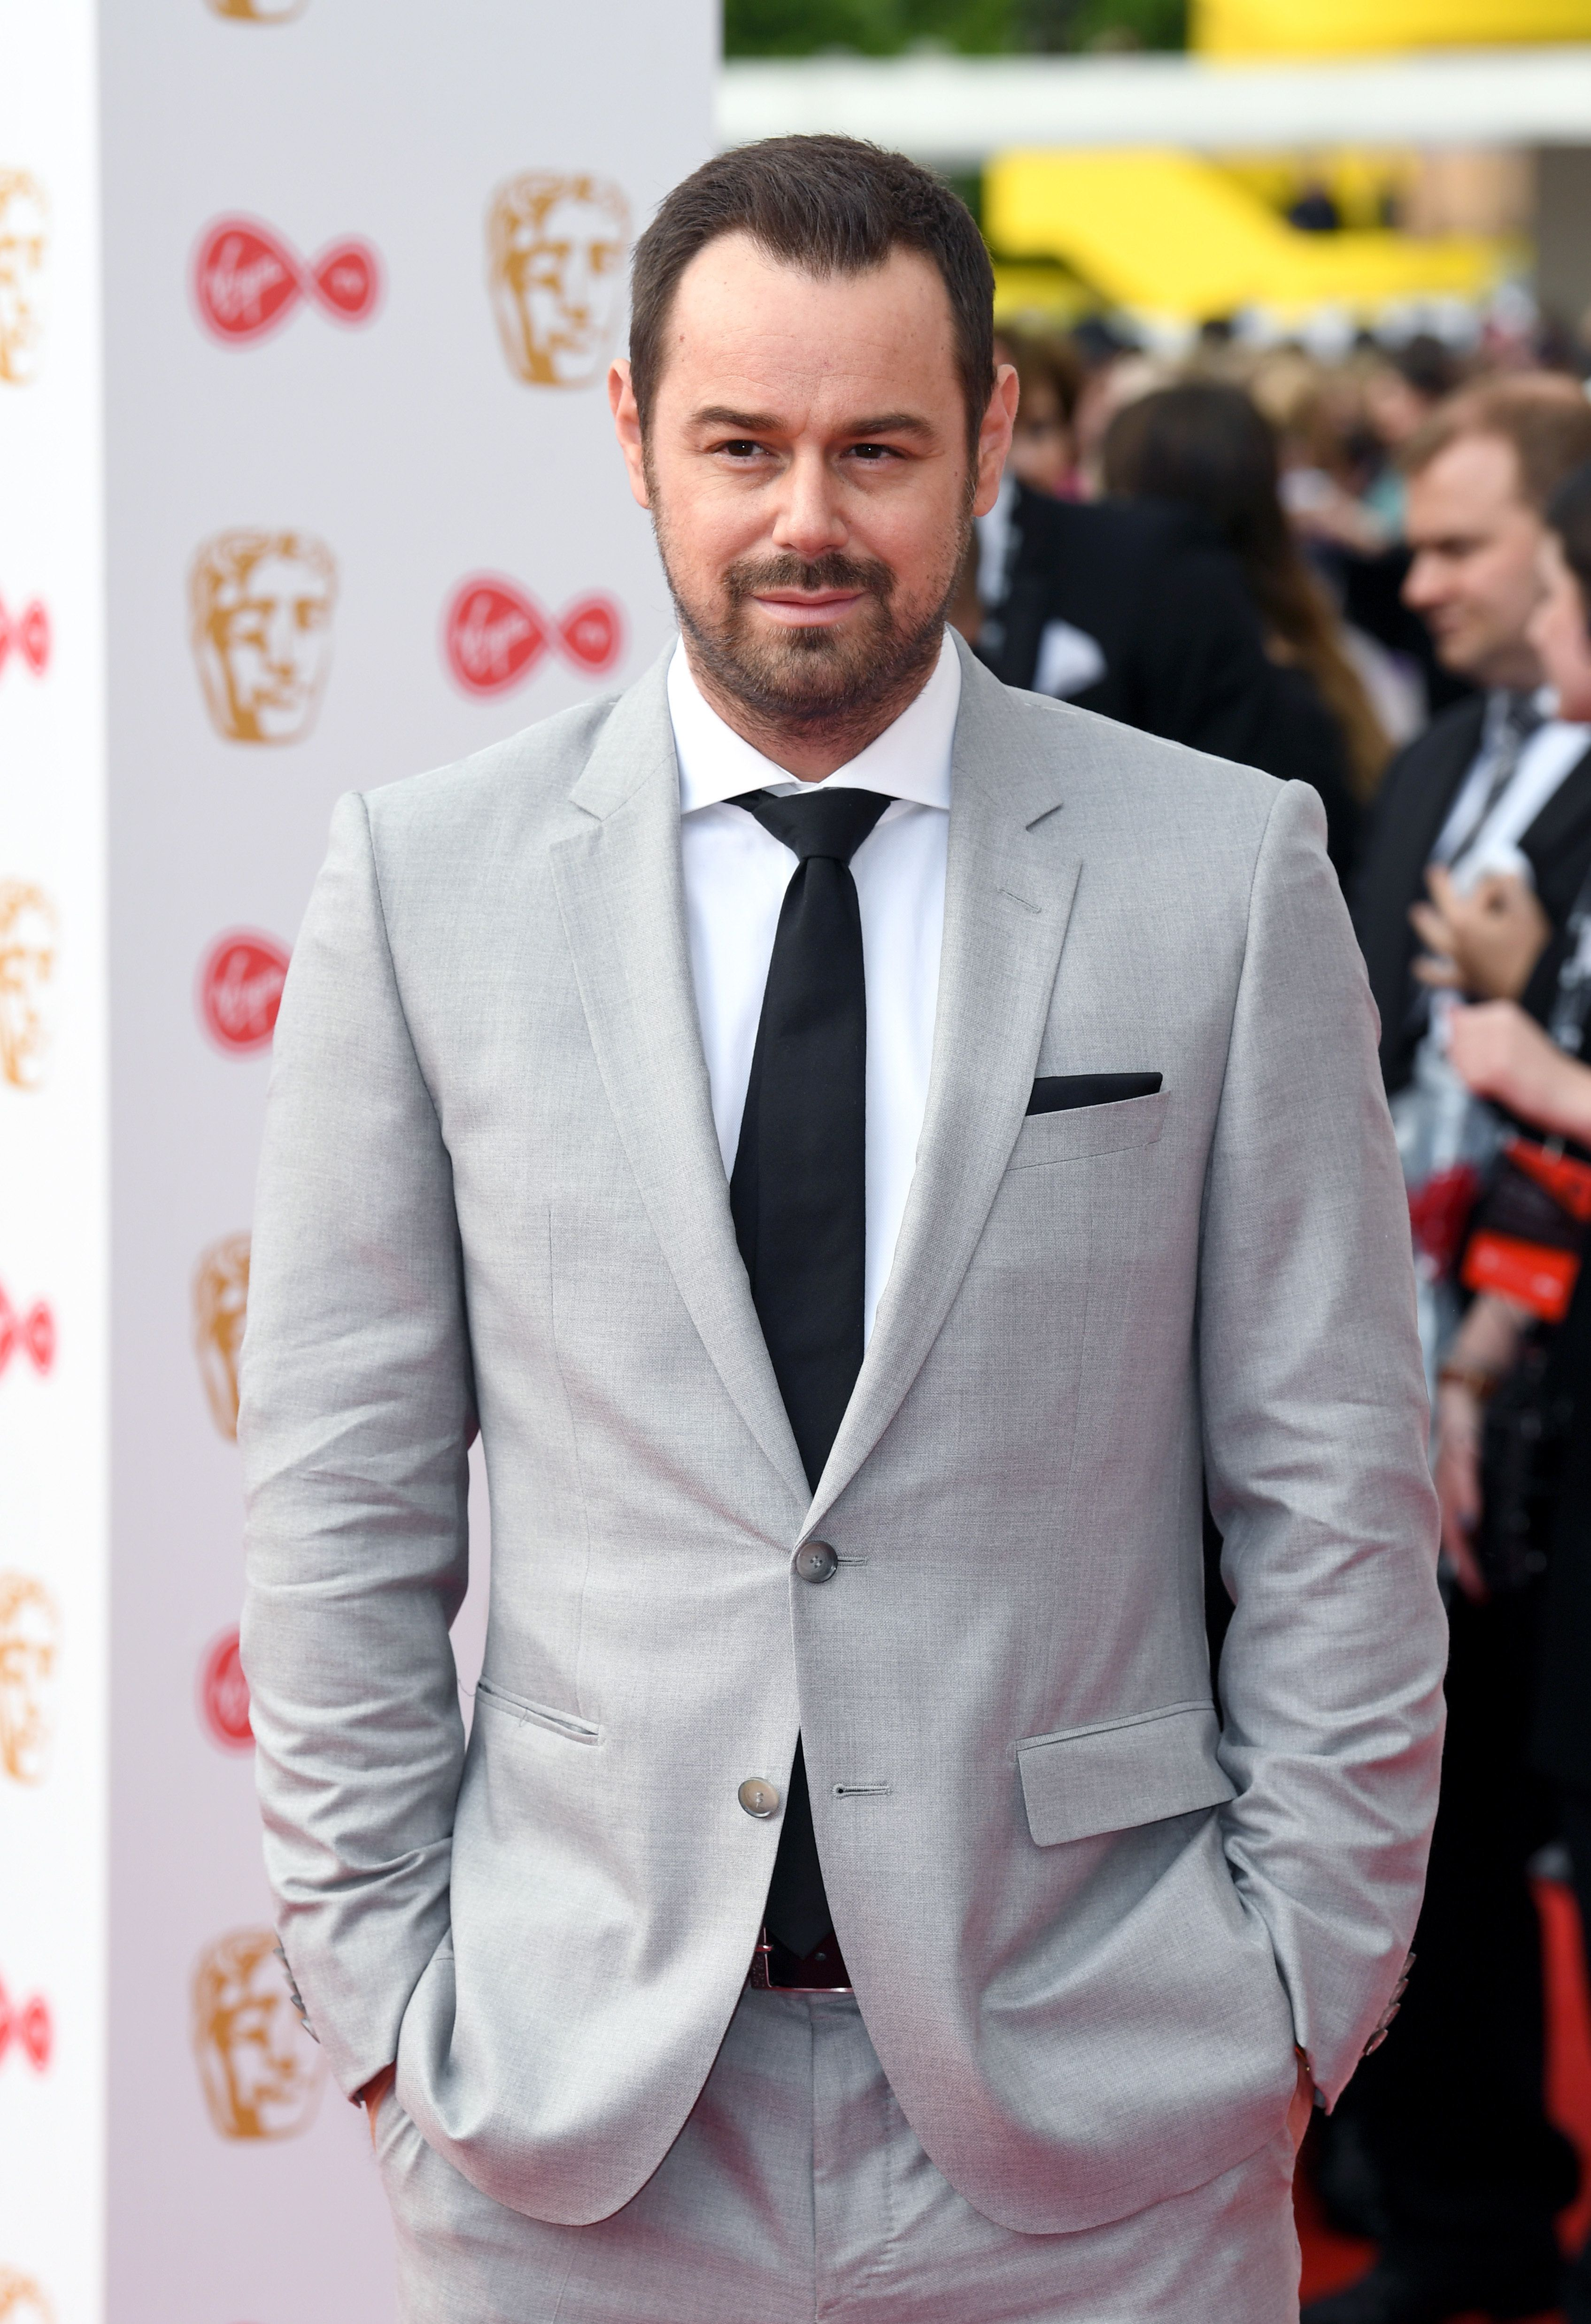 Danny Dyer In Extraordinary Expletive-Laden Rant Against Nigel Farage And